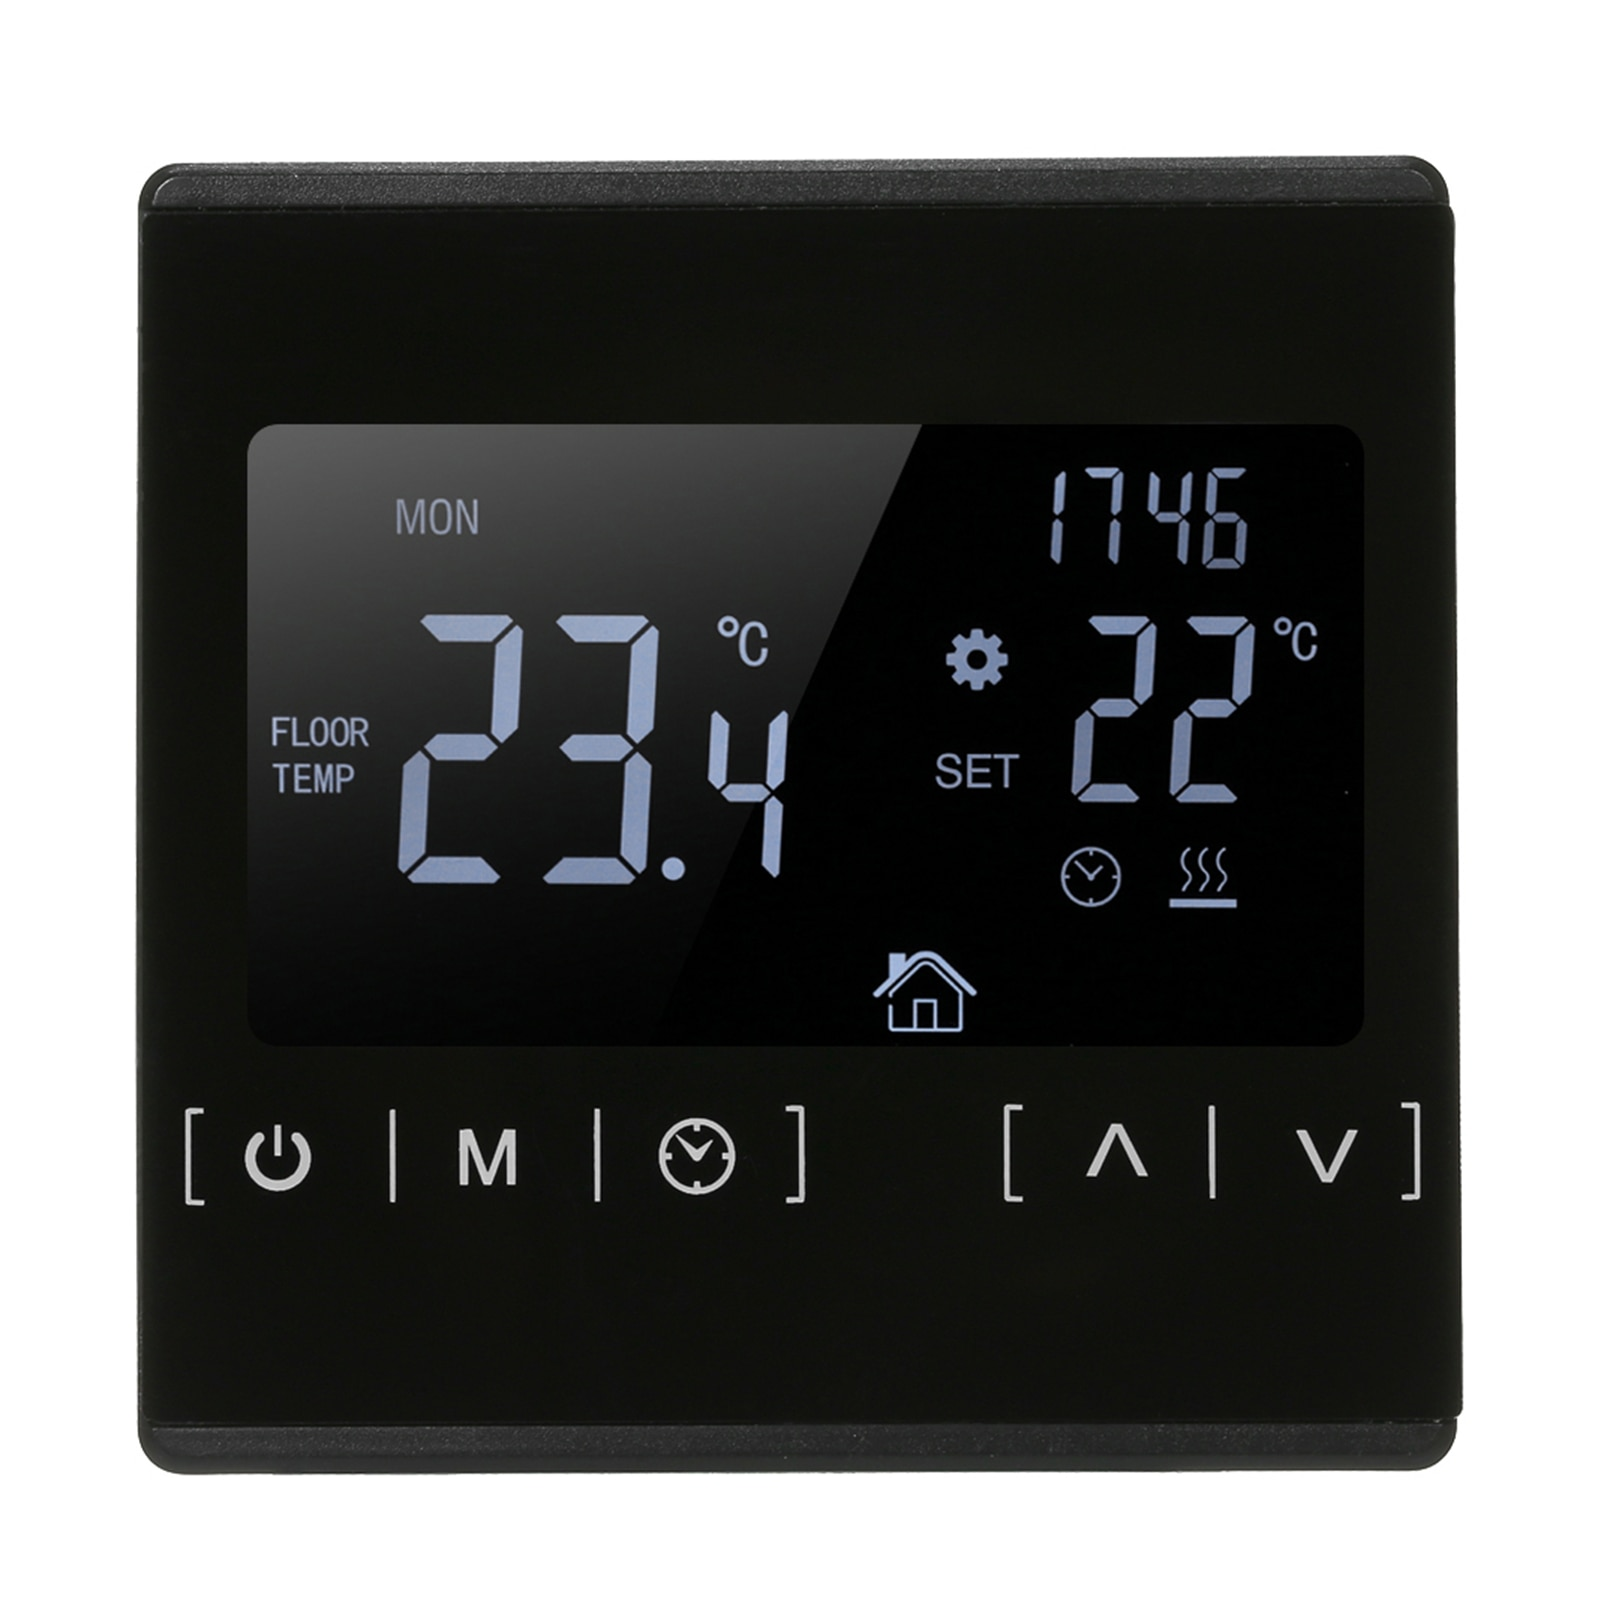 LCD Touch Screen Thermostat Electric Floor Heating System Water Heating Thermoregulator AC85-240V Temperature Controller wifi temperature regulator heating thermostat digital lcd touch screen temperature controller thermoregulator with alexa home